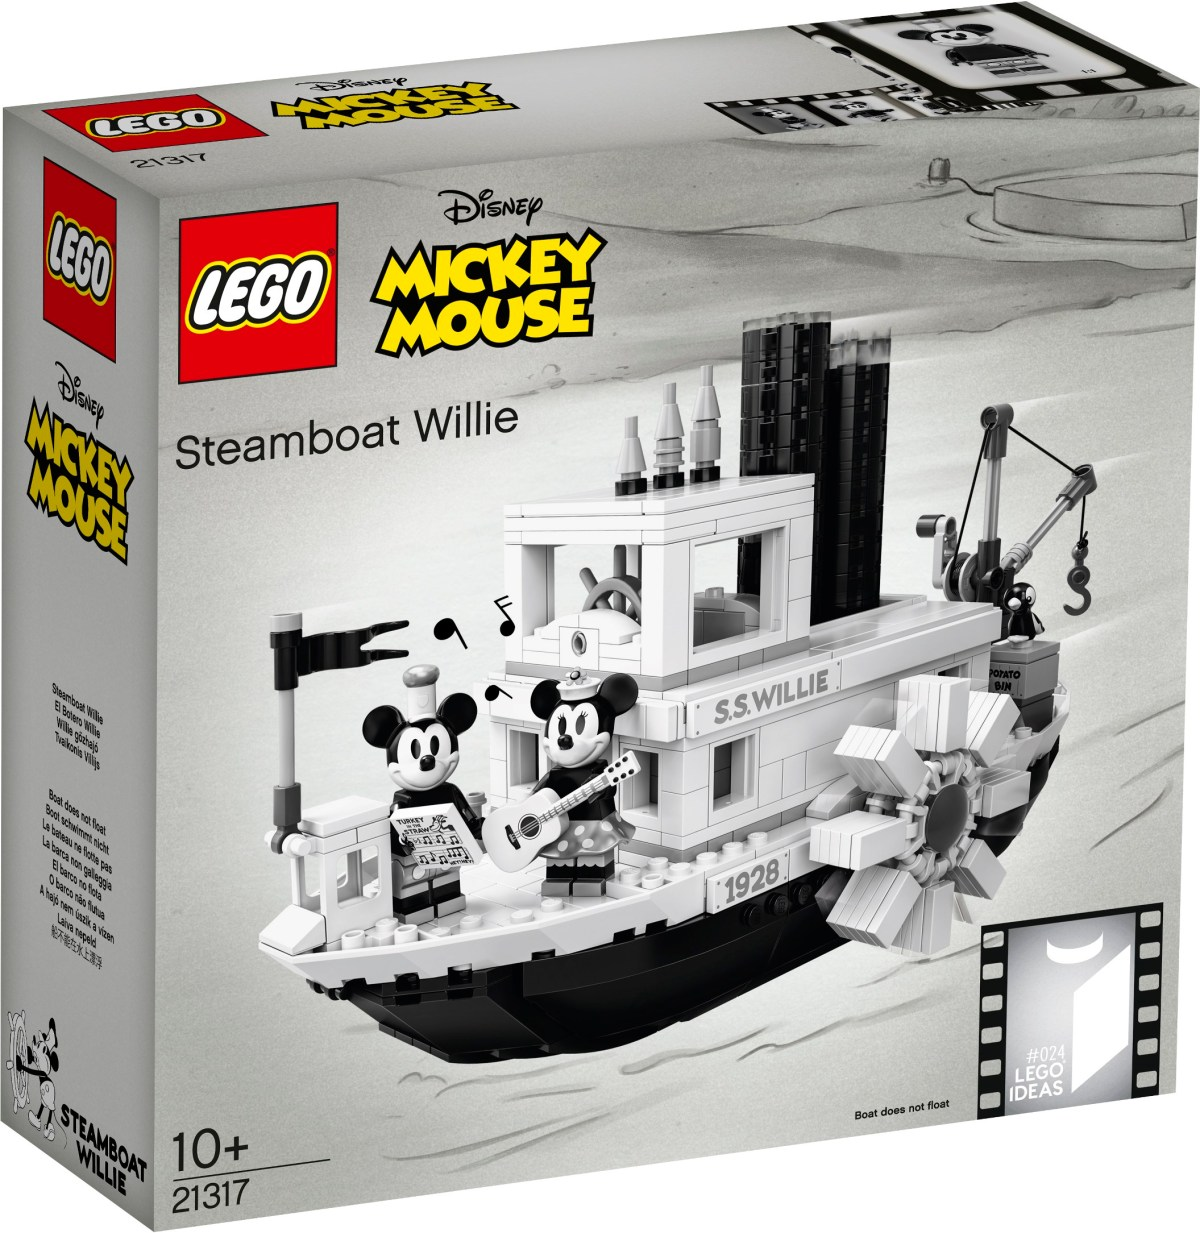 LEGO Ideas Releases Steamboat Willie (21317) Designer Video